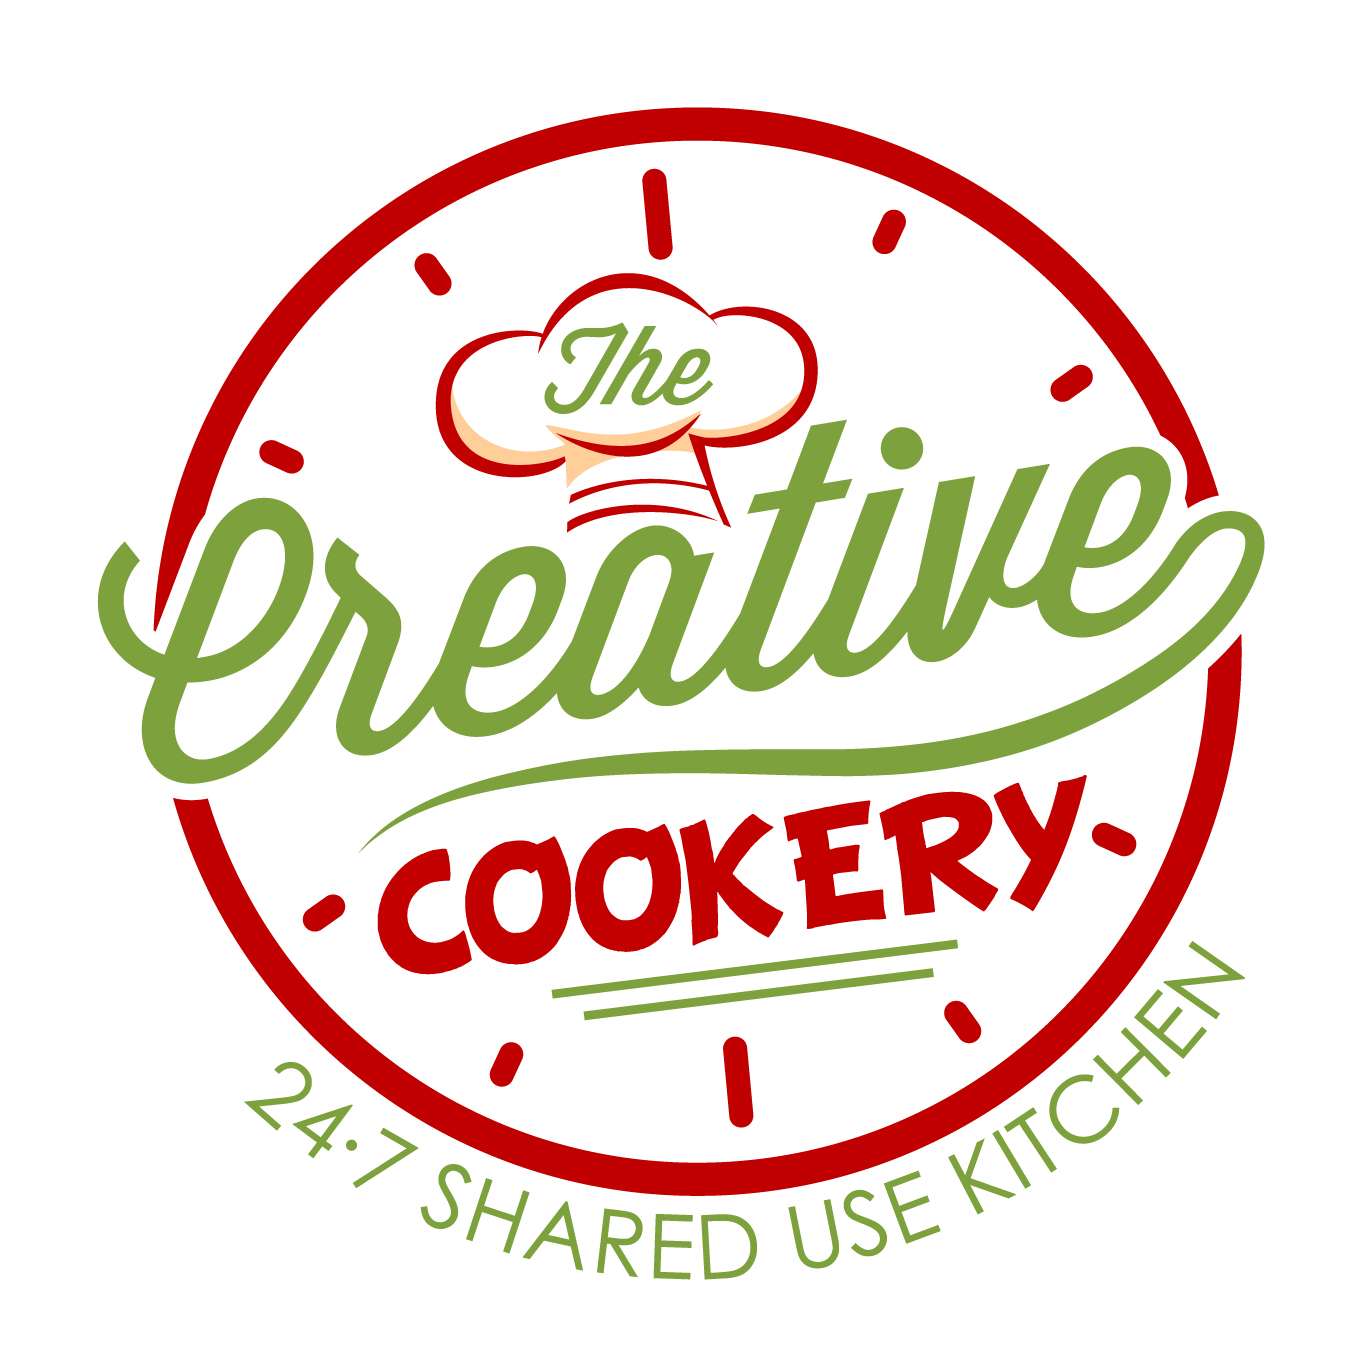 Logo The Creative Cookery